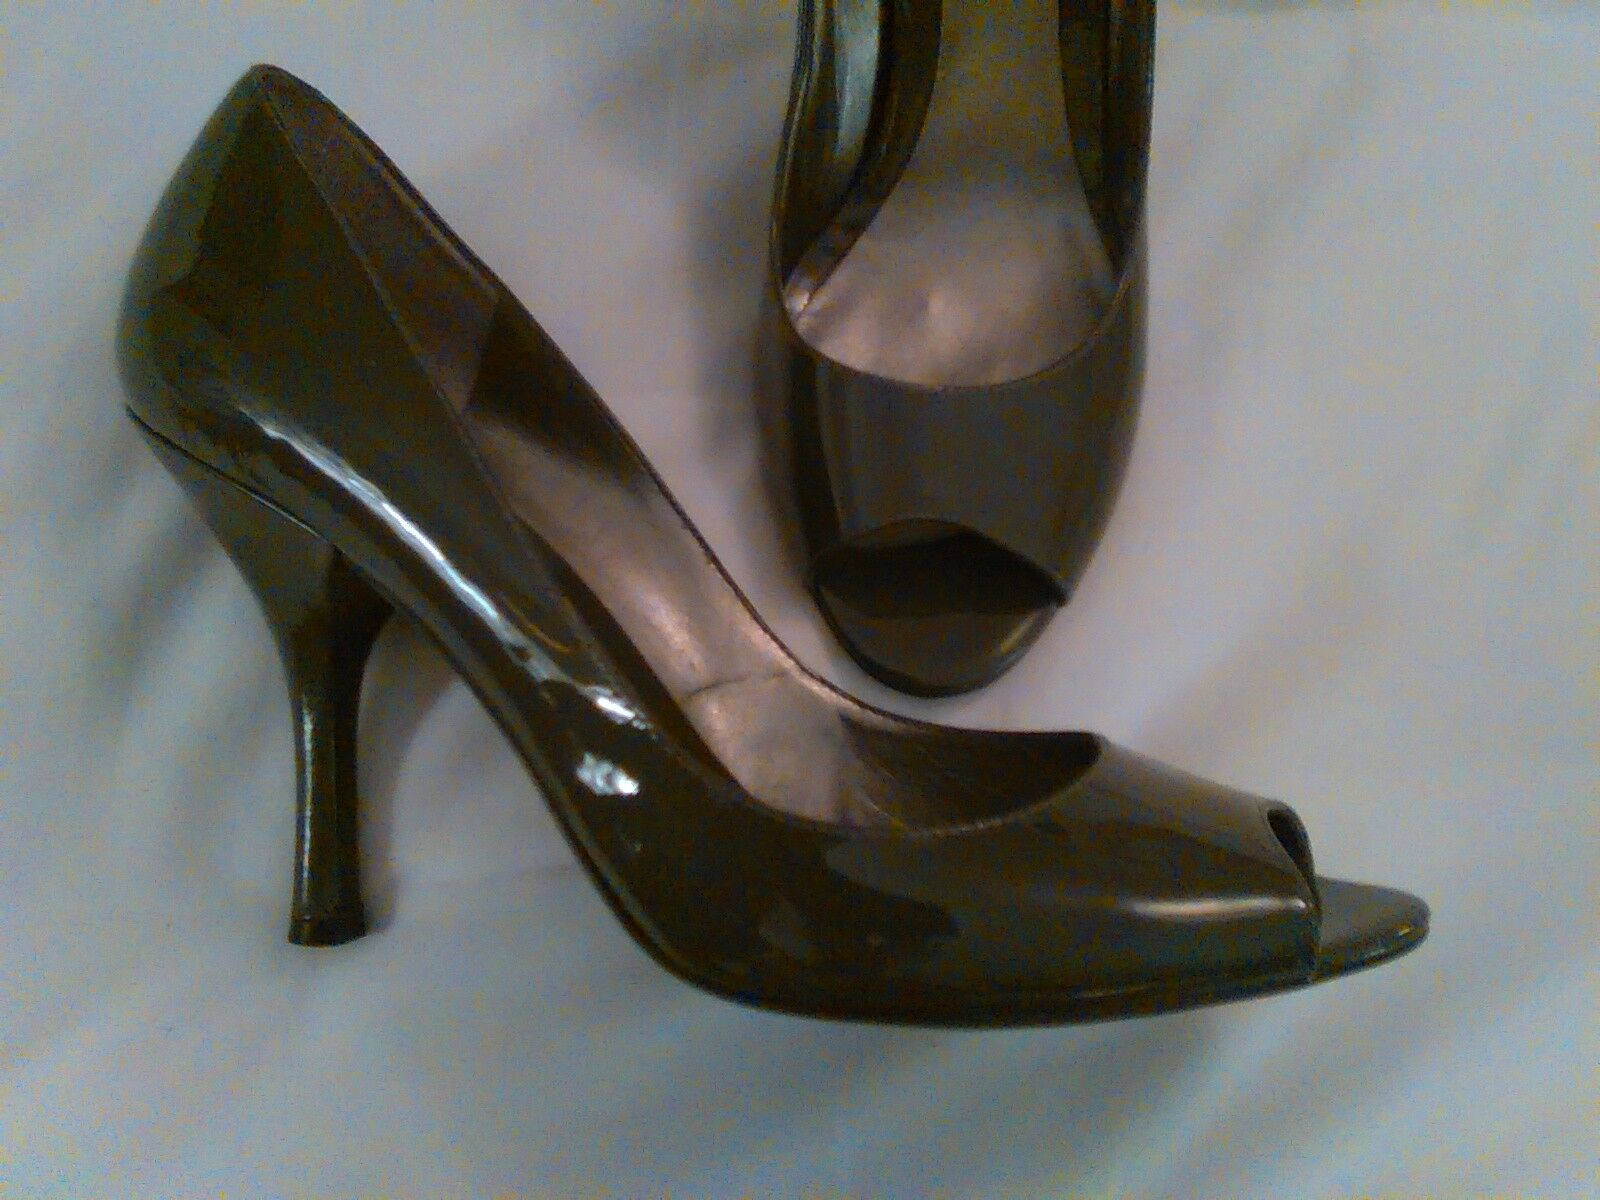 NINE LEATHER WEST GRAY PATENT LEATHER NINE SHOES 9 M BEAUTIFUL 4231ec